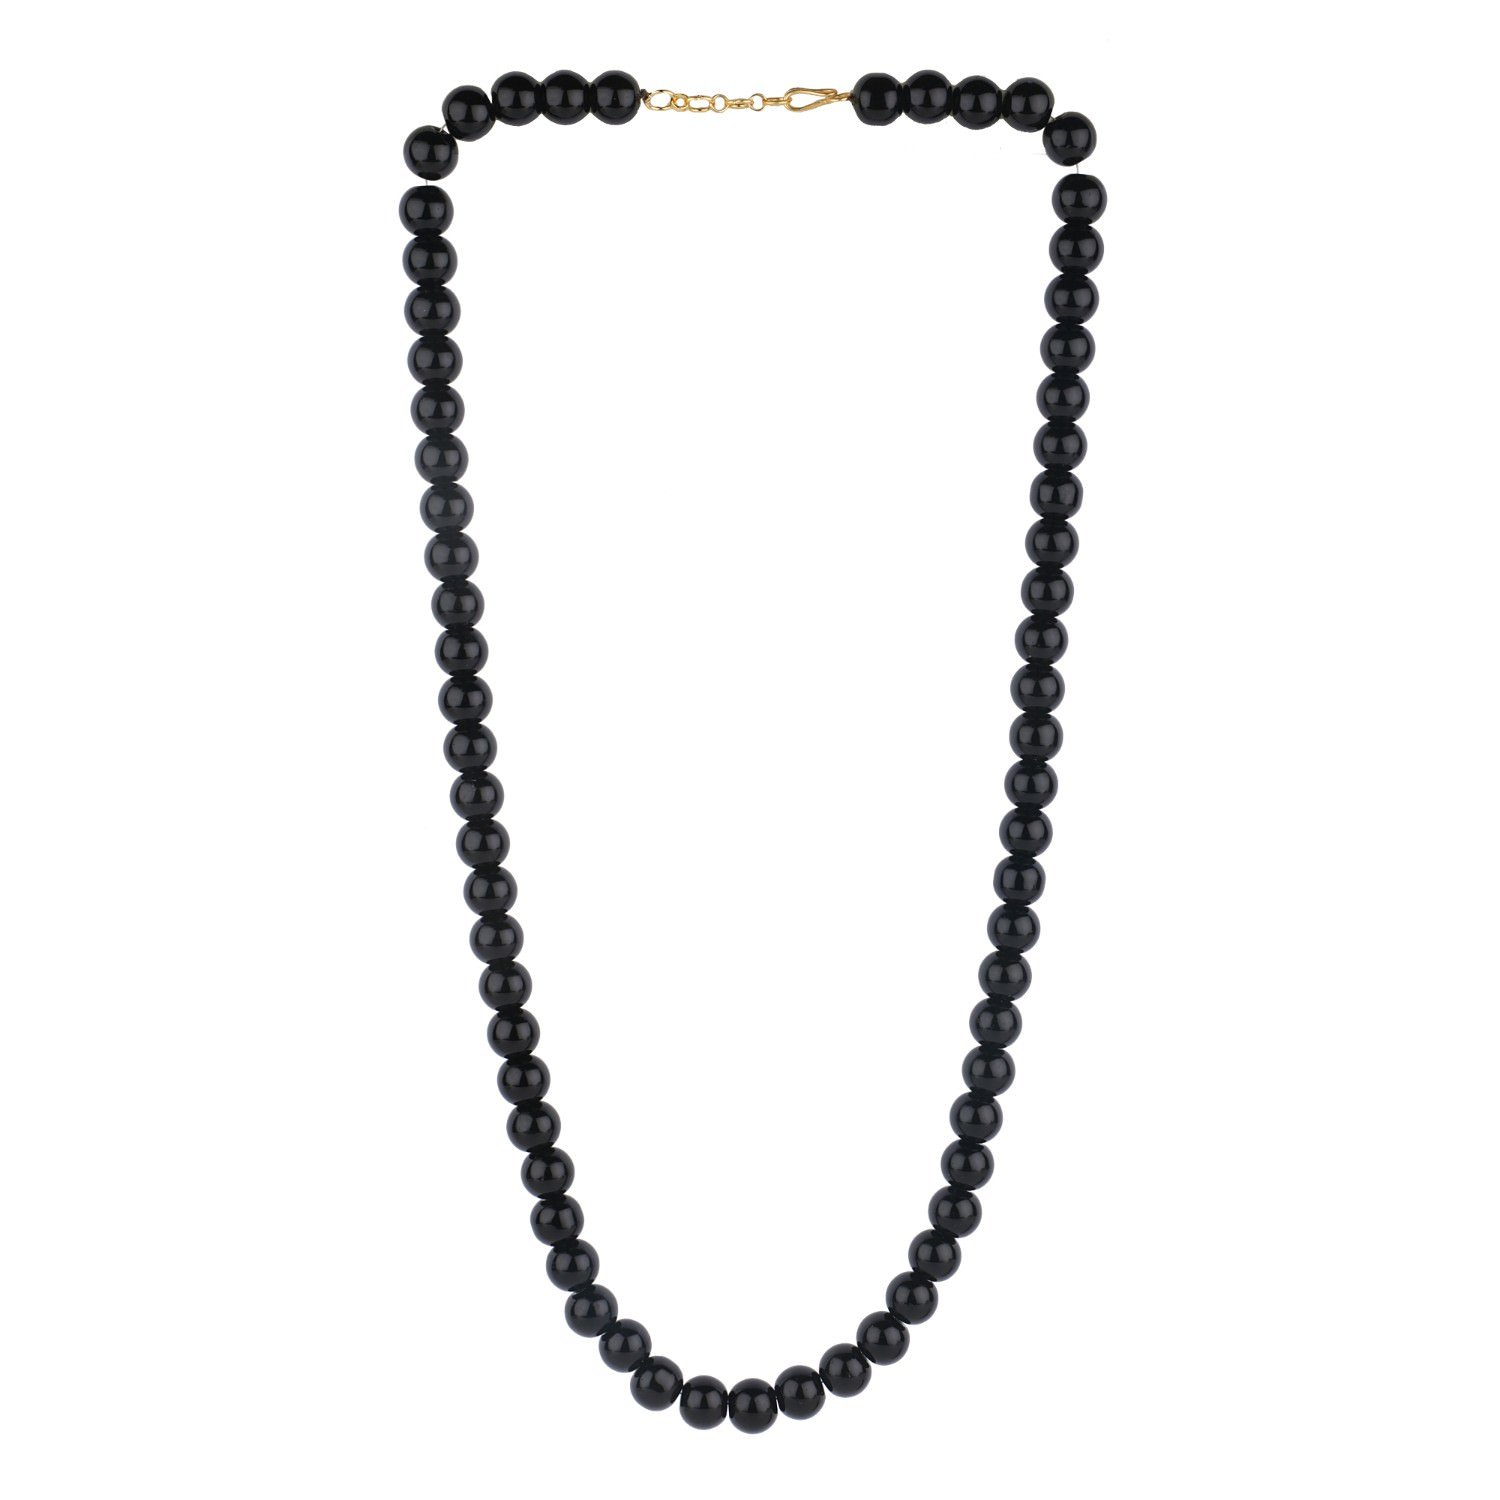 Efulgenz Handcrafted Black Crystal/Glass Stone Classic Round Beaded Strand Necklace Fashion Accessories for Women and Girls